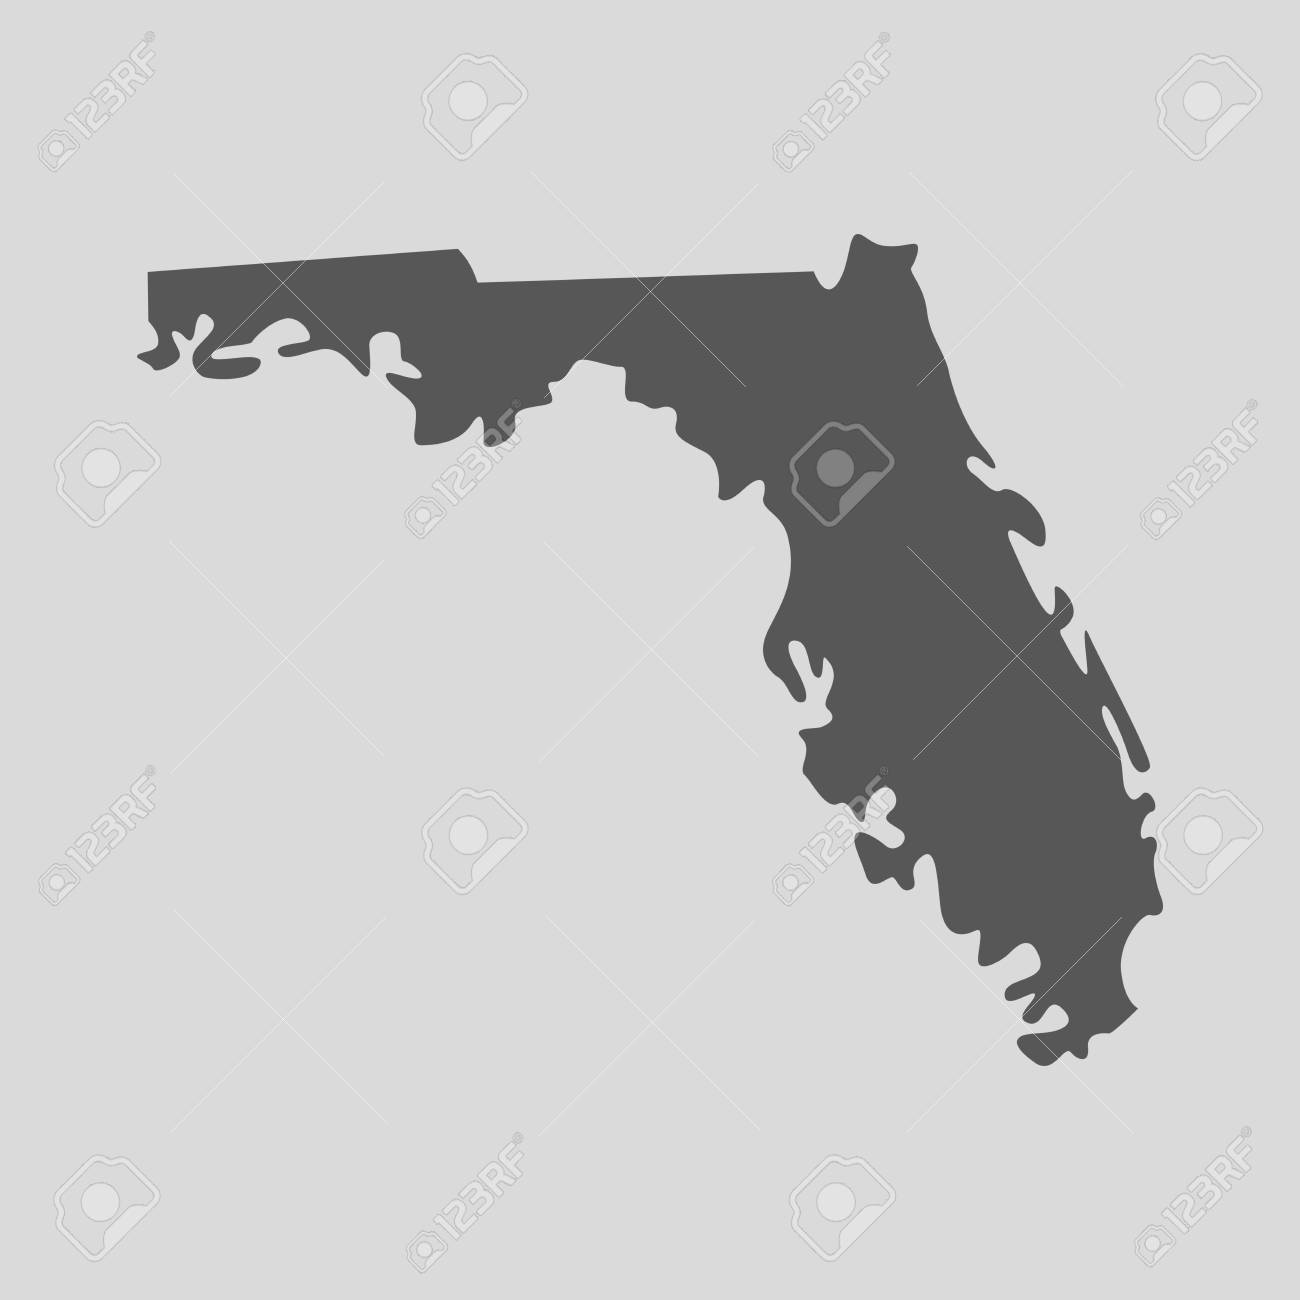 Map Of The State Of Florida.Black Map Of The State Of Florida Vector Illustration Simple